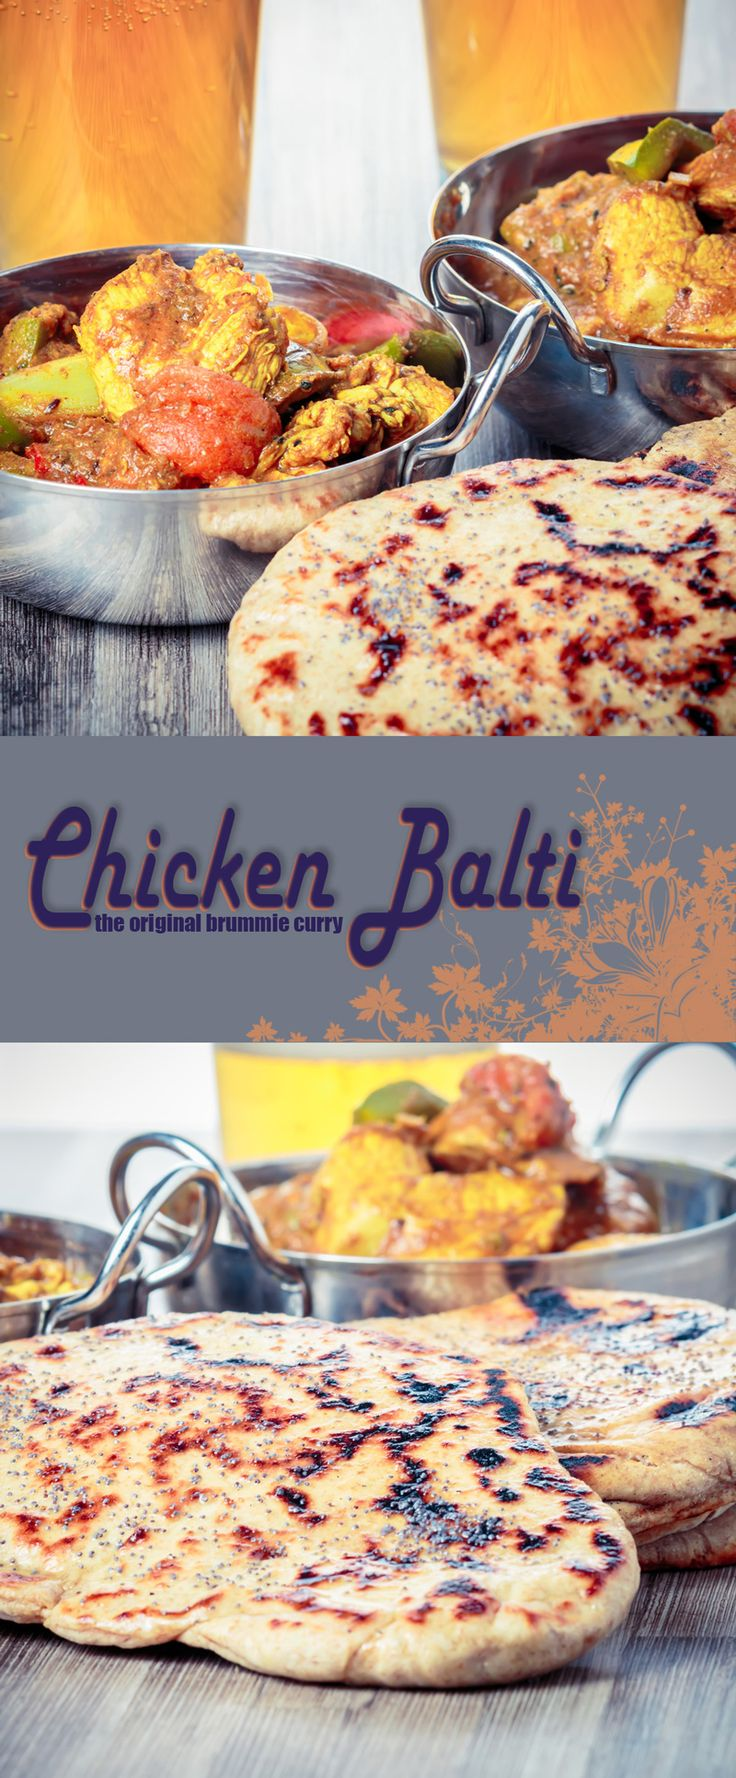 Chicken Balti Recipe: Chicken Balti is the pride of Birmingham and a curry not of Indian but Anglo Indian heritage dating from the late 1970's and went global!